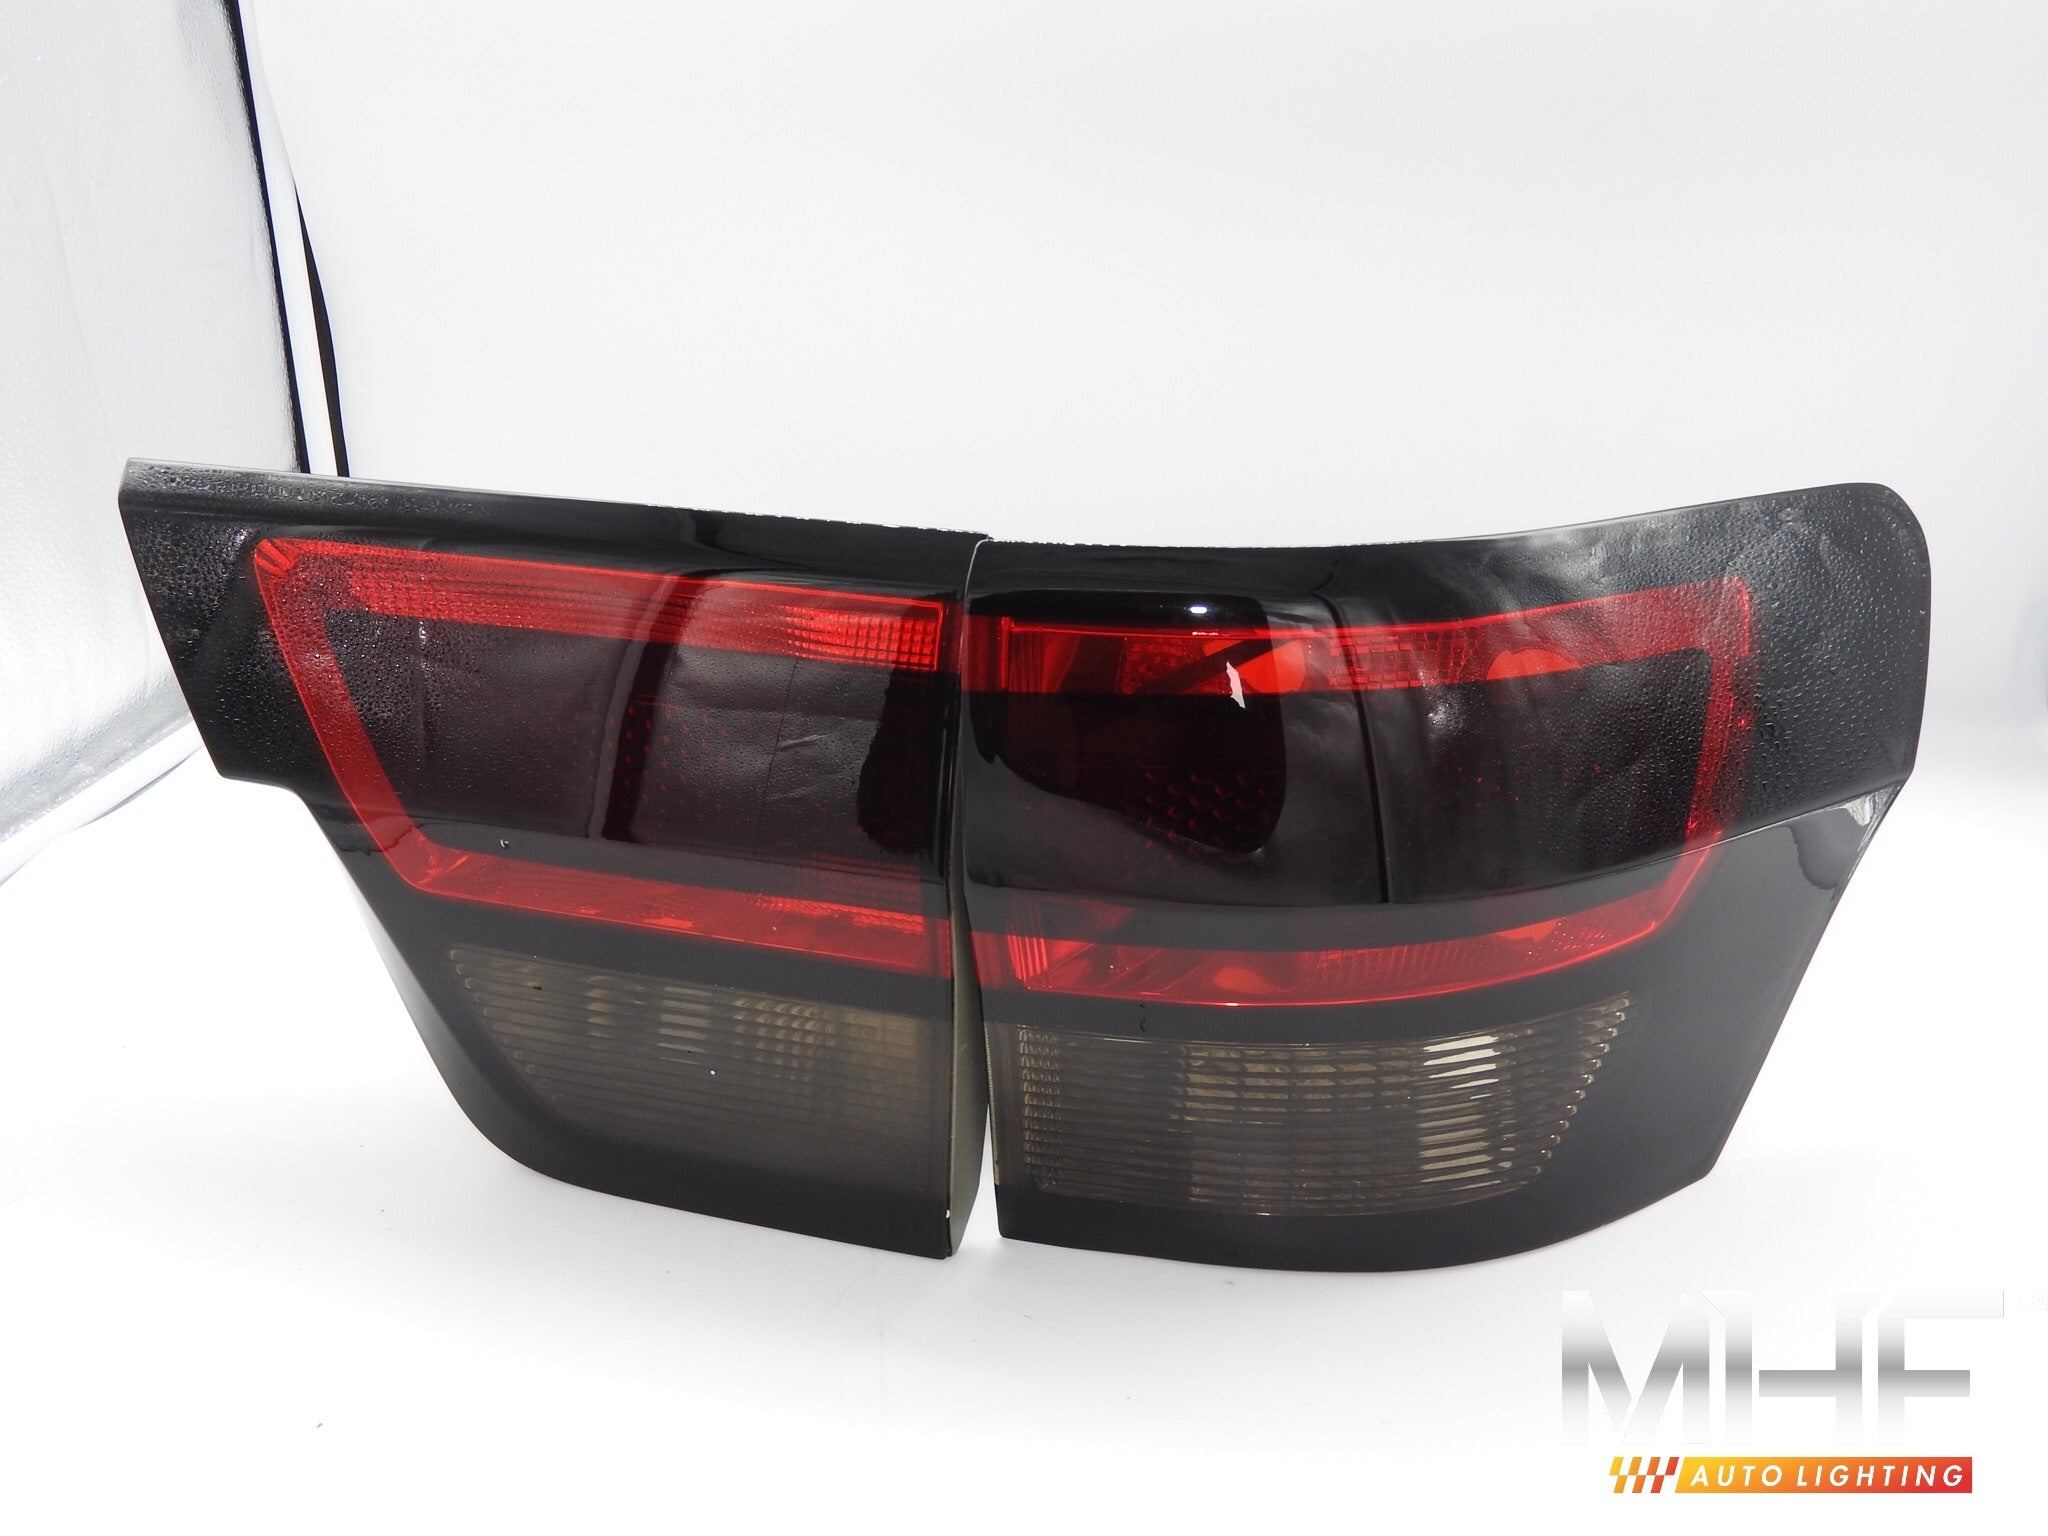 Painted Gloss Black Design Tail Lights for 2011-2013 Grand Cherokee WK2